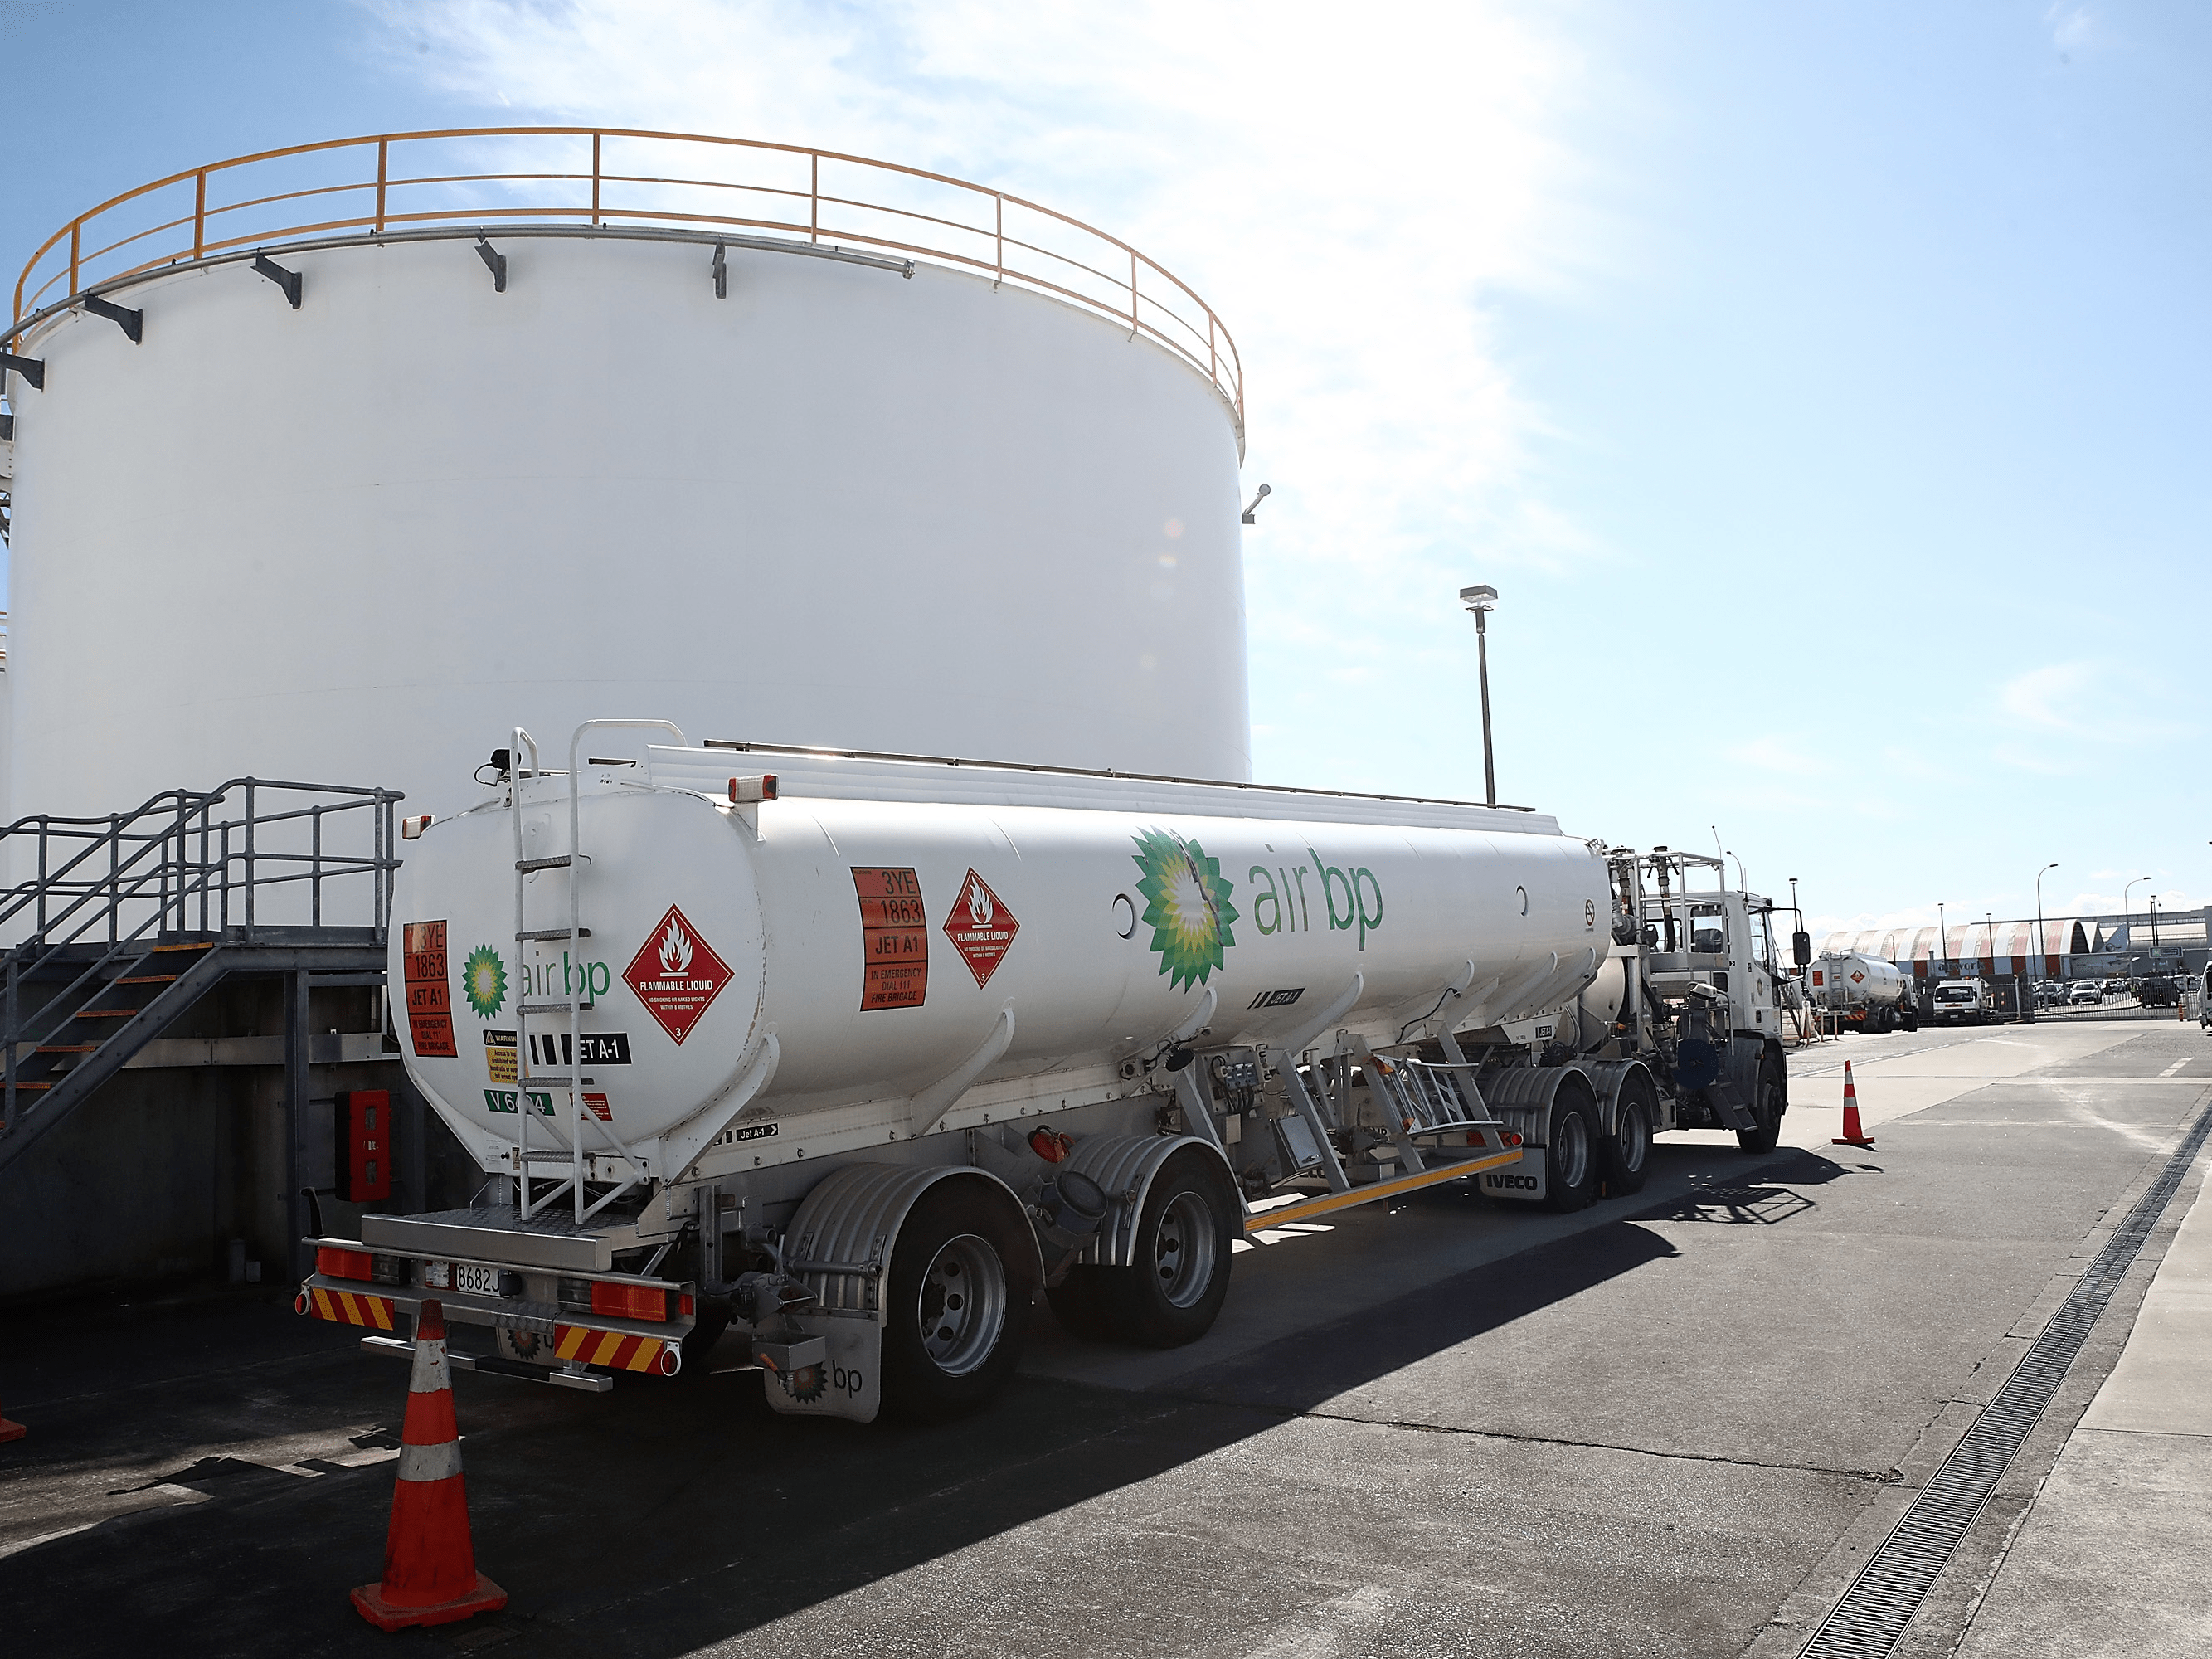 BP share price: BP cuts dividend, posts $6.7bn loss